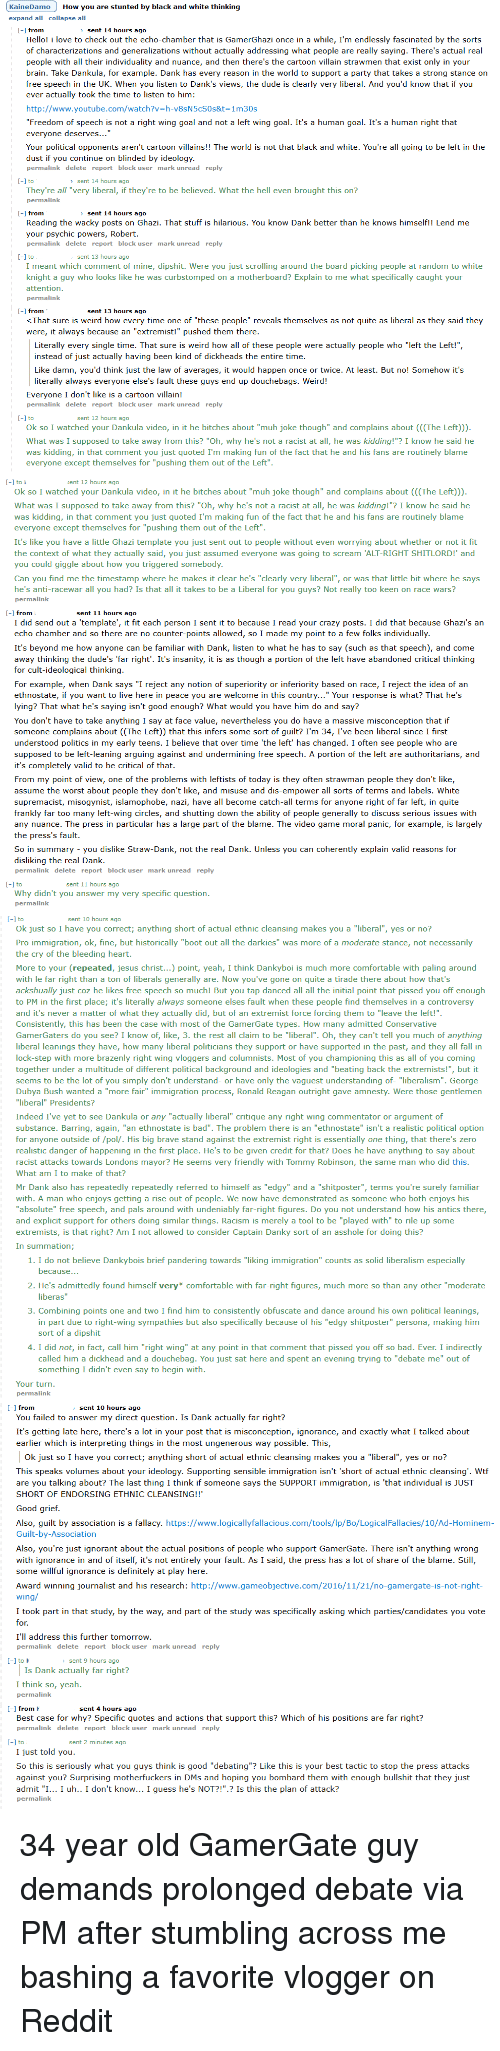 """race wars: KaineDamoHow you are stunted by black and white thinking  expand all collapse all  -] fromsent 14 hours ago  Hello! i love to check out the echo-chamber that is GamerGhazi once in a while, I'm endlessly fascinated by the sorts  of characterizations and generalizations without actually addressing what people are really saying. There's actual real  people with all their individuality and nuance, and then there's the cartoon villain strawmen that exist only in your  brain. Take Dankula, for example. Dank has every reason in the world to support a party that takes a strong stance on  free speech in the UK. When you listen to Dank's views, the dude is clearly very liberal. And you'd know that if you  ever actually took the time to listen to him:  http://www.youtube.com/watch?v-h-v8sN5cSOs&t-1m30s  """"Freedom of speech is not a right wing goal and not a left wing goal. It's a human goal. It's a human right that  everyone deserves...  Your political opponents aren't cartoon villains!! The world is not that black and white. You're all going to be left in the  dust if you continue on blinded by ideology  permalink delete report block user mark unread reply  [-1 tosent 14 hours ago  They're all """"very liberal, if they're to be believed. What the hell even brought this on?  permalink  H from  sent 14 hours ago  Reading the wacky posts on Ghazi. That stuff is hilarious. You know Dank better than he knows himself!! Lend me  your psychic powers, Robert  permalink delete report block user mark unread reply  -1 tosent 13 hours ago  I meant which comment of mine, dipshit. Were you just scrolling around the board picking people at random to white  knight a guy who looks like he was curbstomped on a motherboard? Explain to me what specifically caught your  attention  permalink  -1 fromsent 13 hours ag  <That sure is weird how every time one of """"these people"""" reveals themselves as not quite as liberal as they said they  were, it always because an """"extremist!"""" pushed them there."""